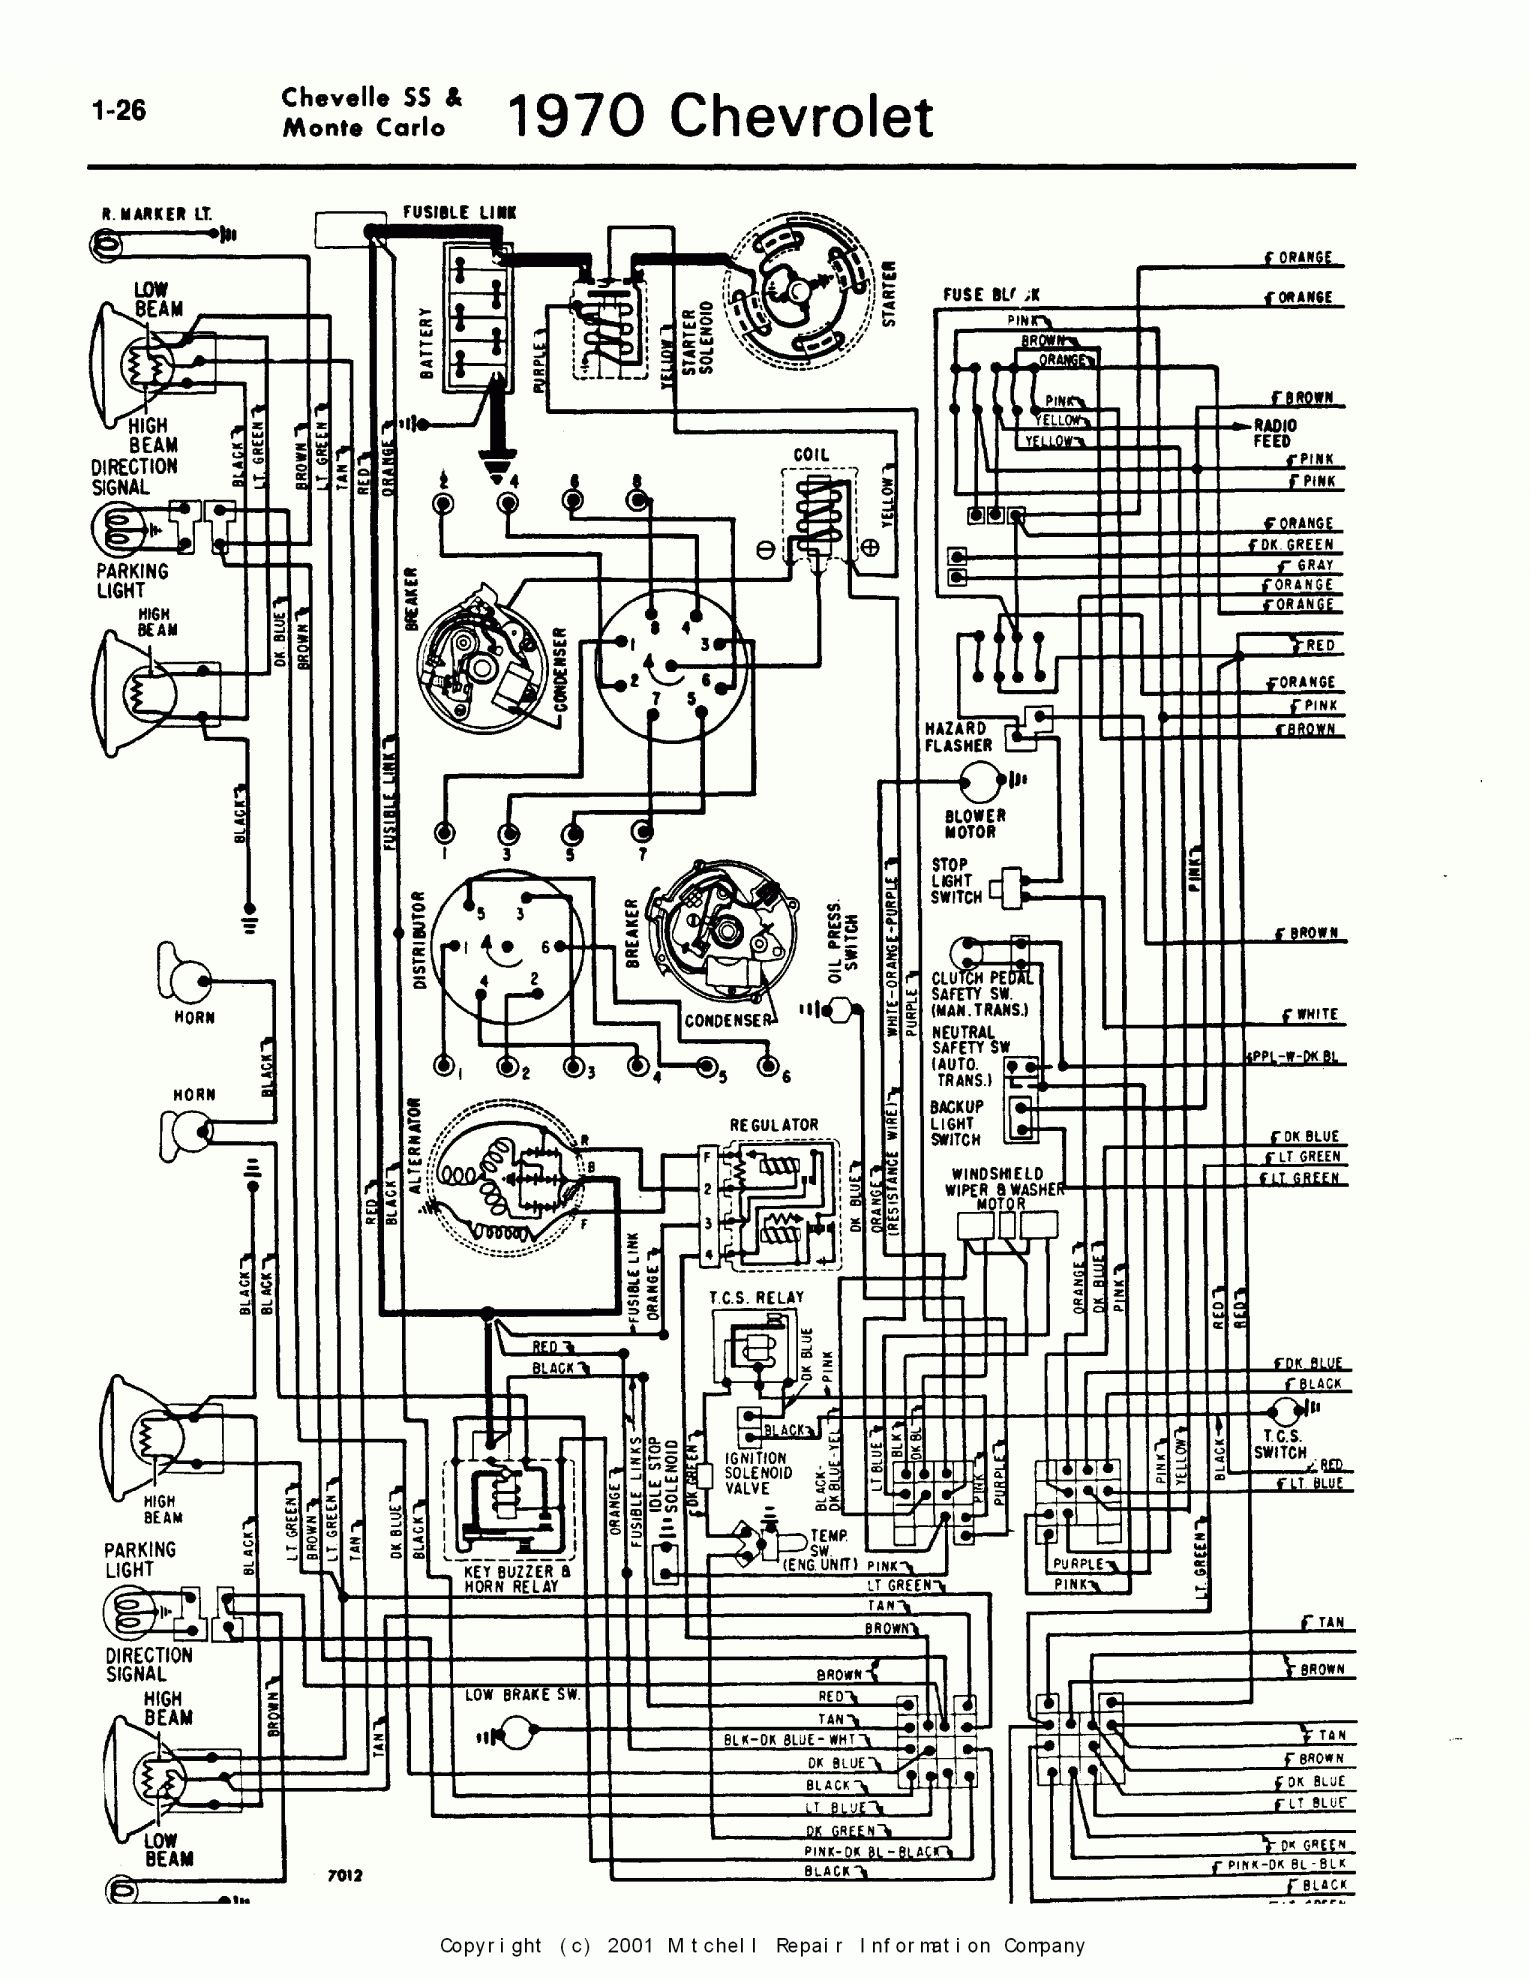 1971 Chevelle Engine Wiring Diagram Wiring Diagrams Name Name Miglioribanche It